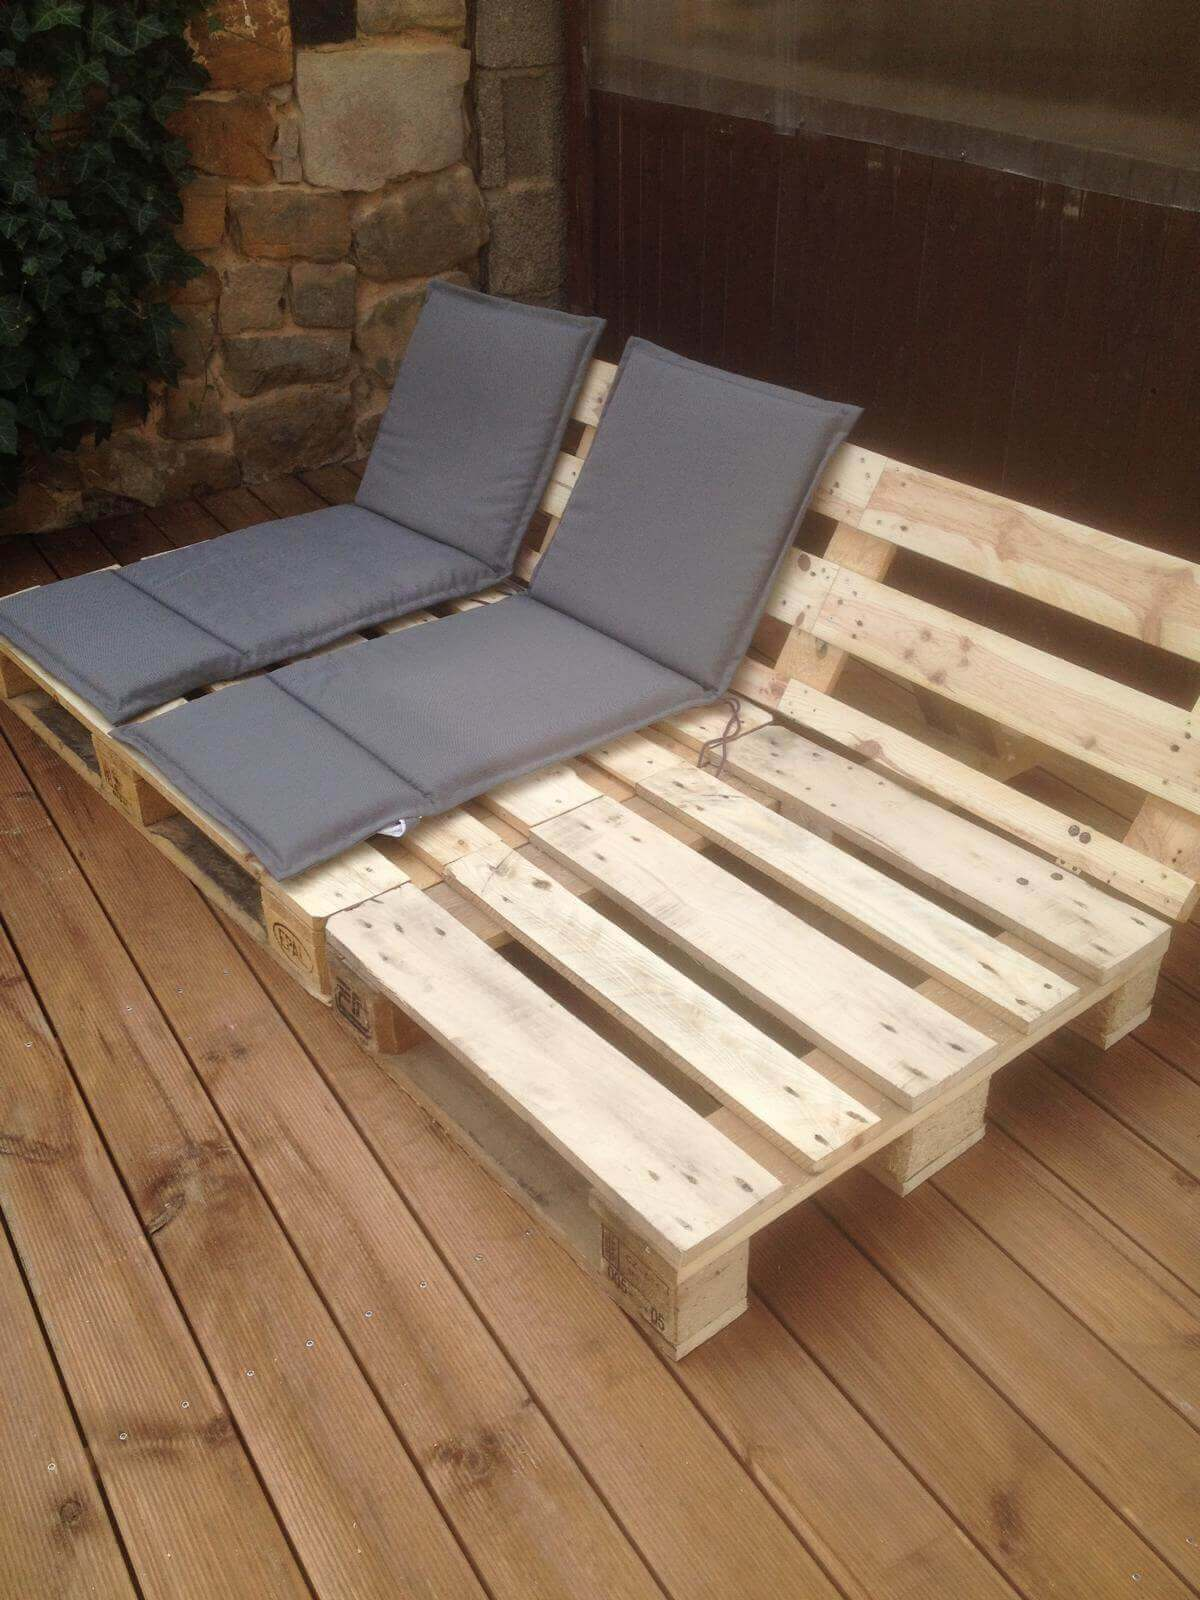 6 Reclining Seats For Your Patio Or Deck